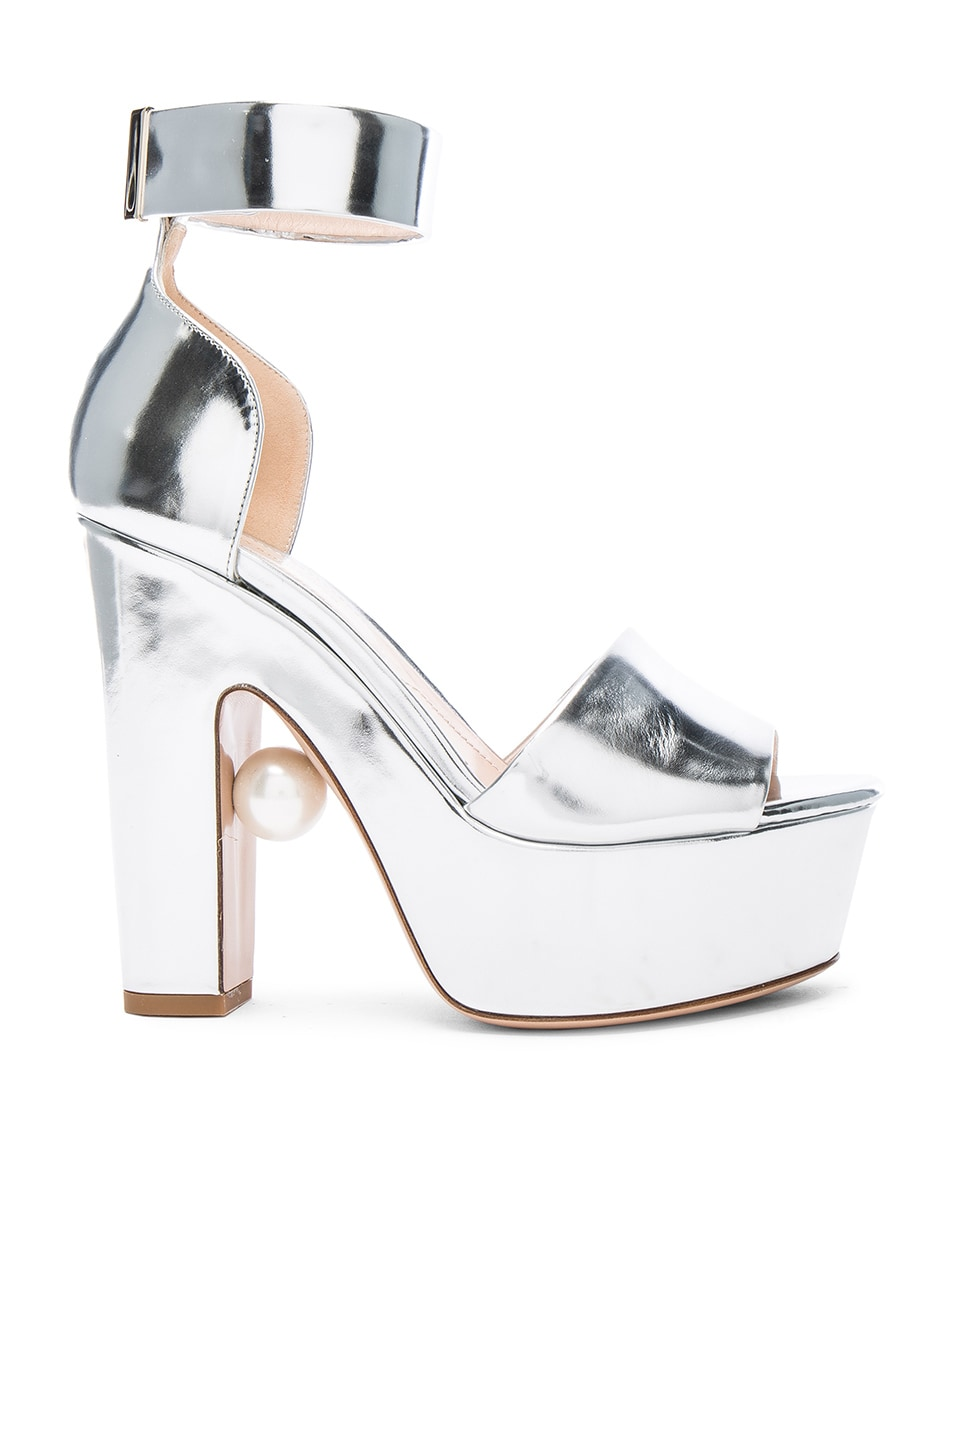 New Promotions Nicholas Kirkwood Leather Metallic And Pvc Pumps Metallic